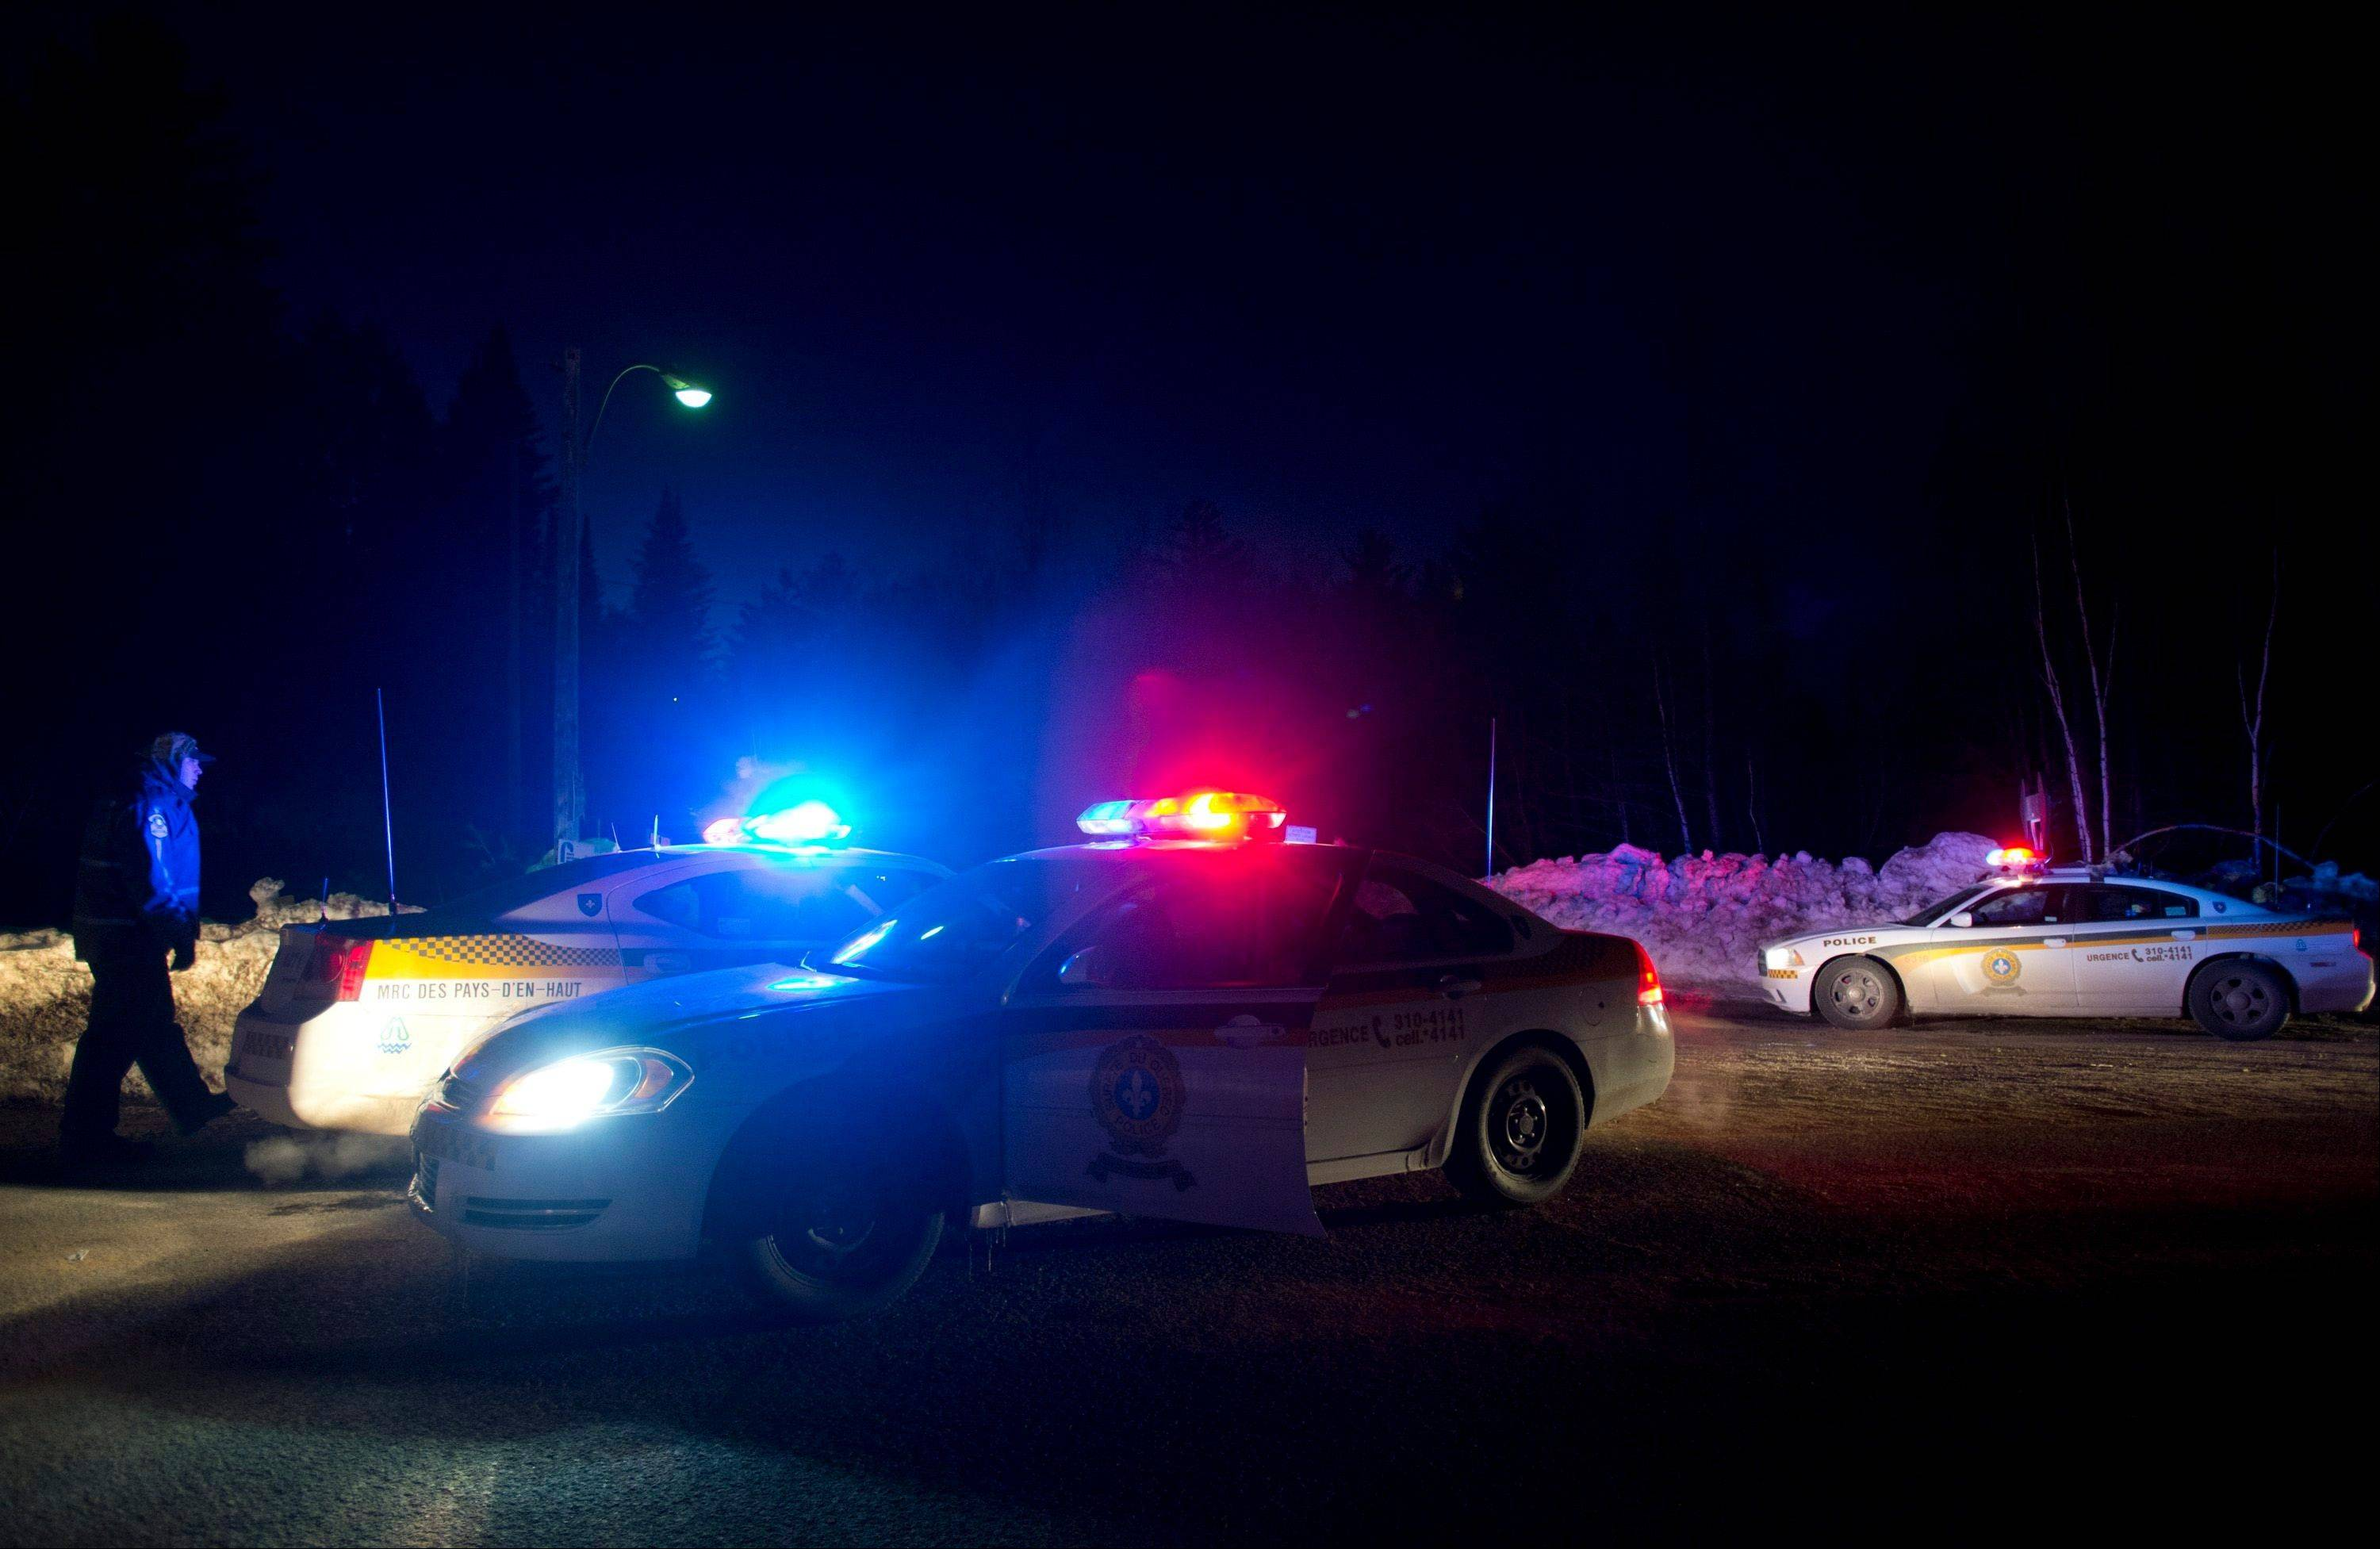 Police vehicles block a road just outside the town of Chertsey, Quebec, Sunday, during a search for escaped prisoners. A dramatic daylight jailbreak involving two Quebec inmates climbing a rope into a hovering helicopter swiftly escalated into a large police operation Sunday night in which at least one escapee was tracked down hours after he fled.